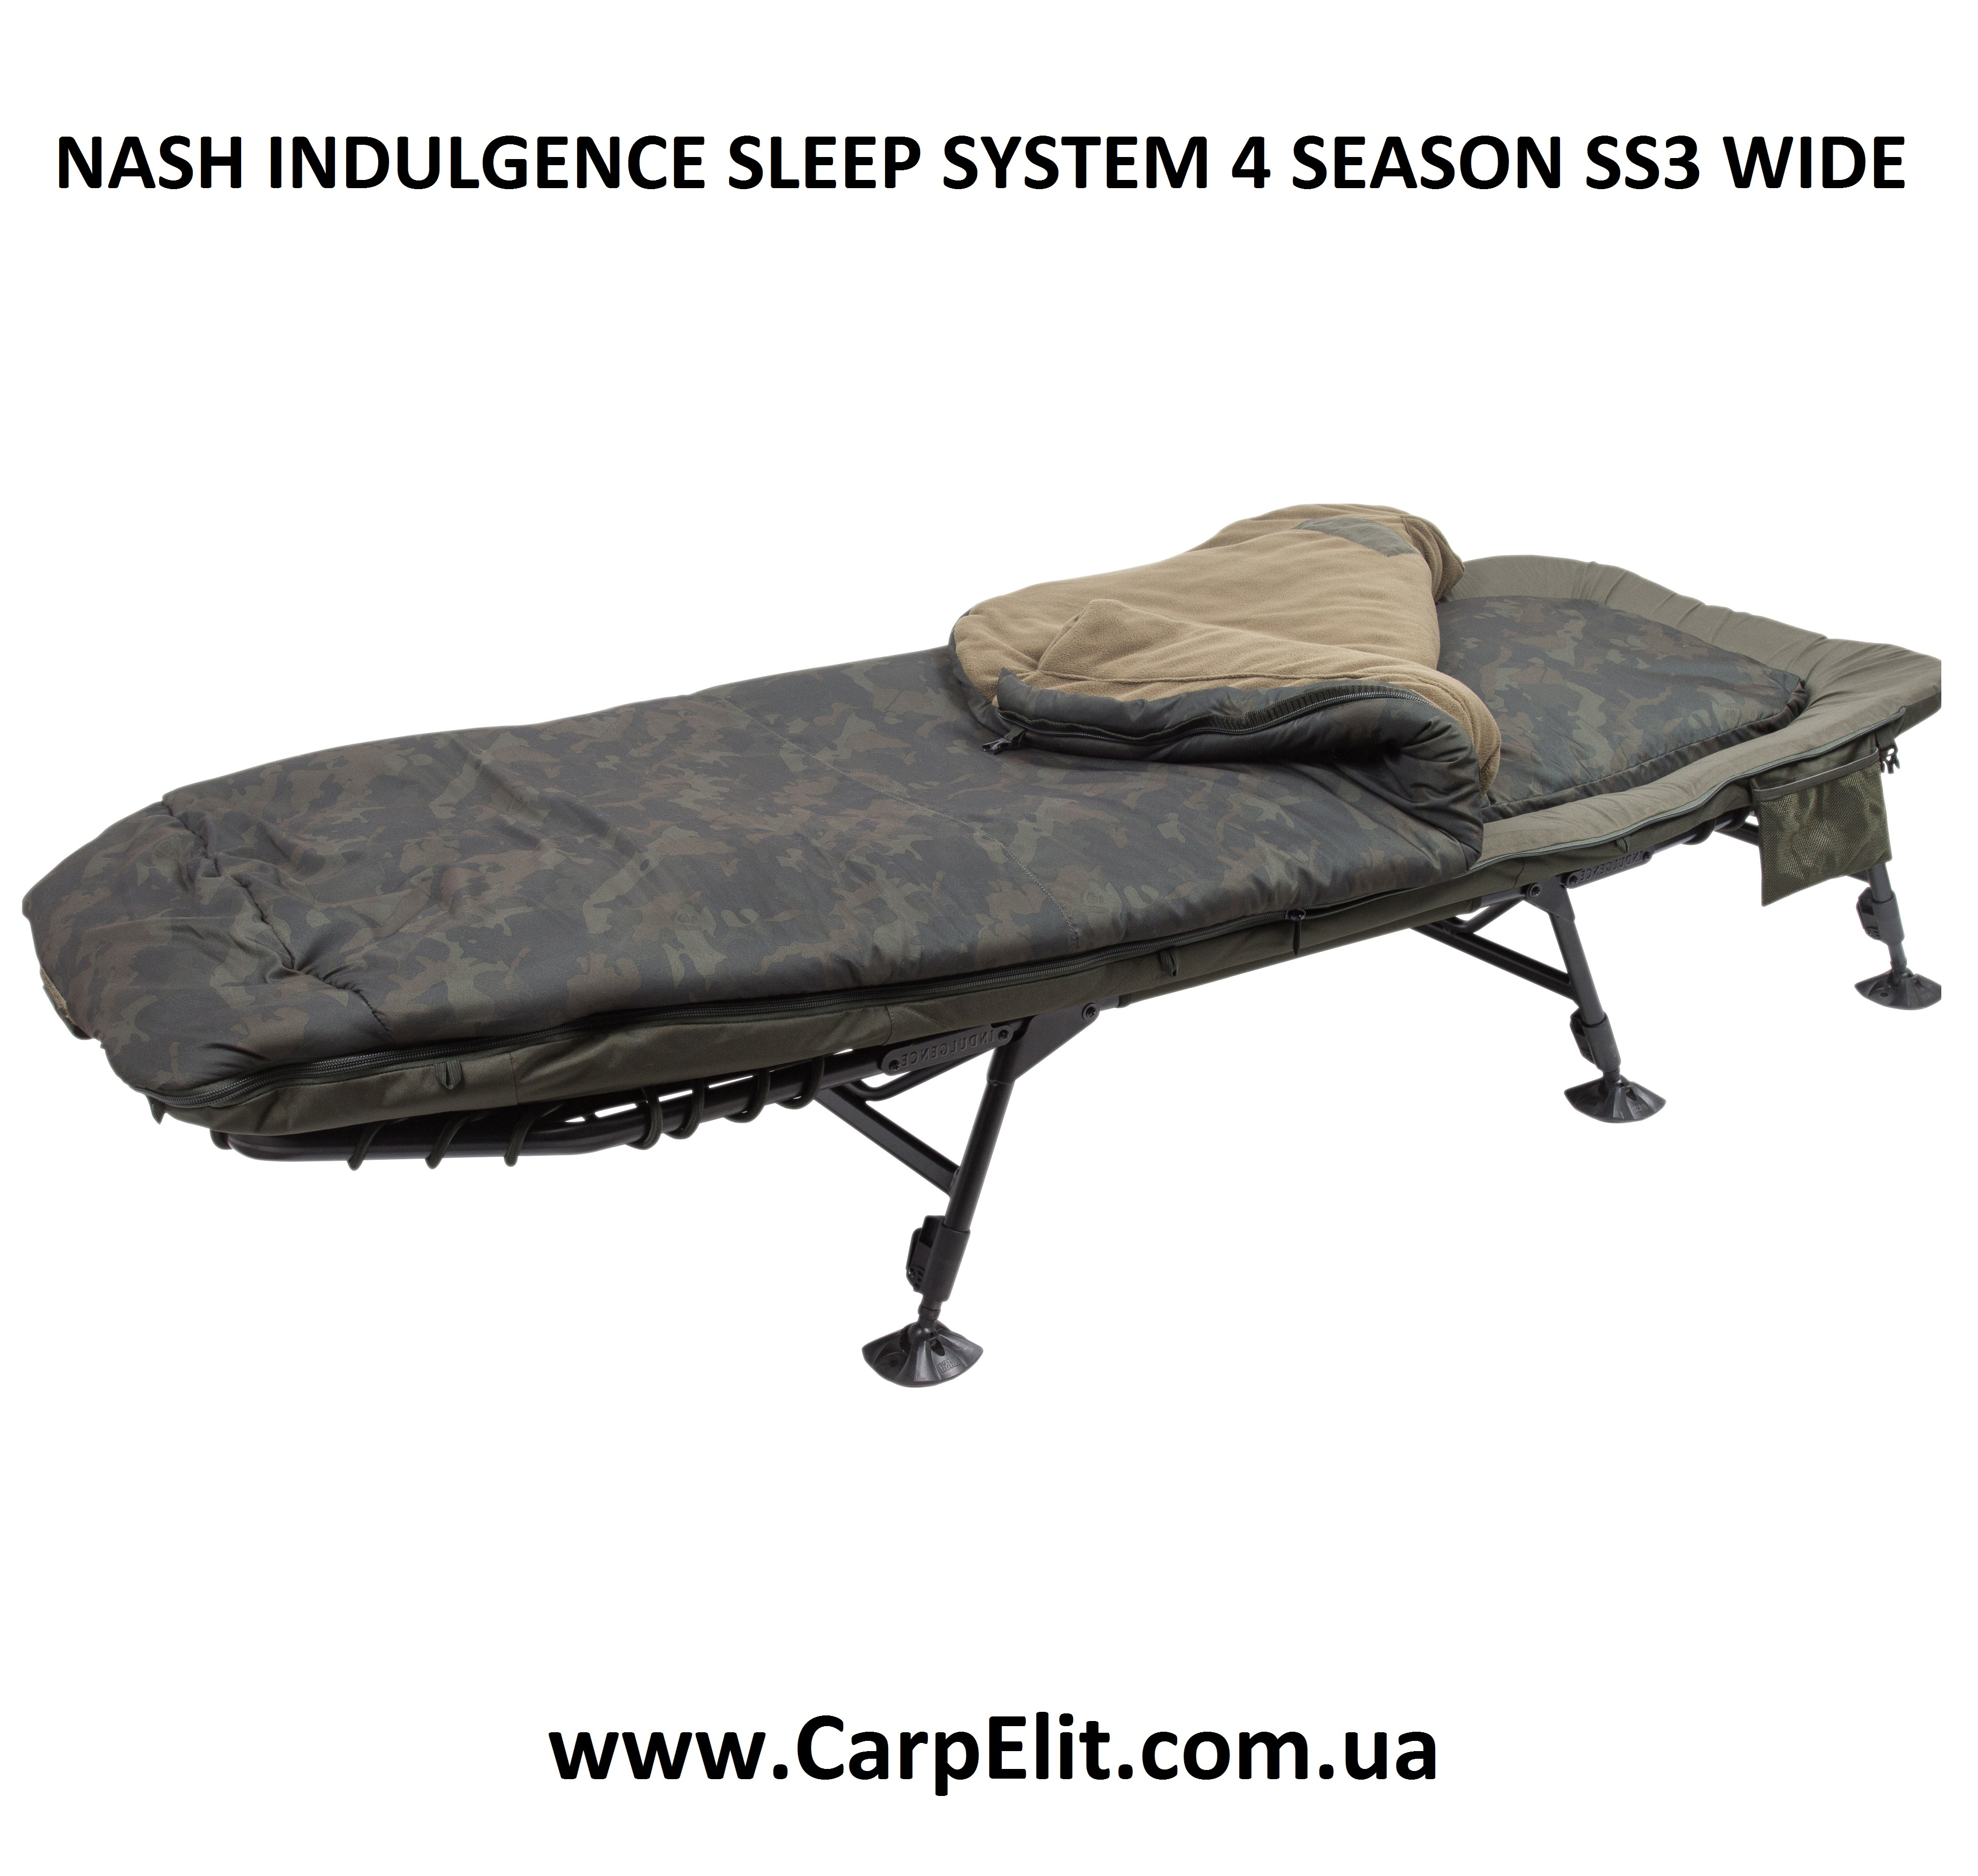 NASH INDULGENCE SLEEP SYSTEM 4 SEASON SS3 WIDE